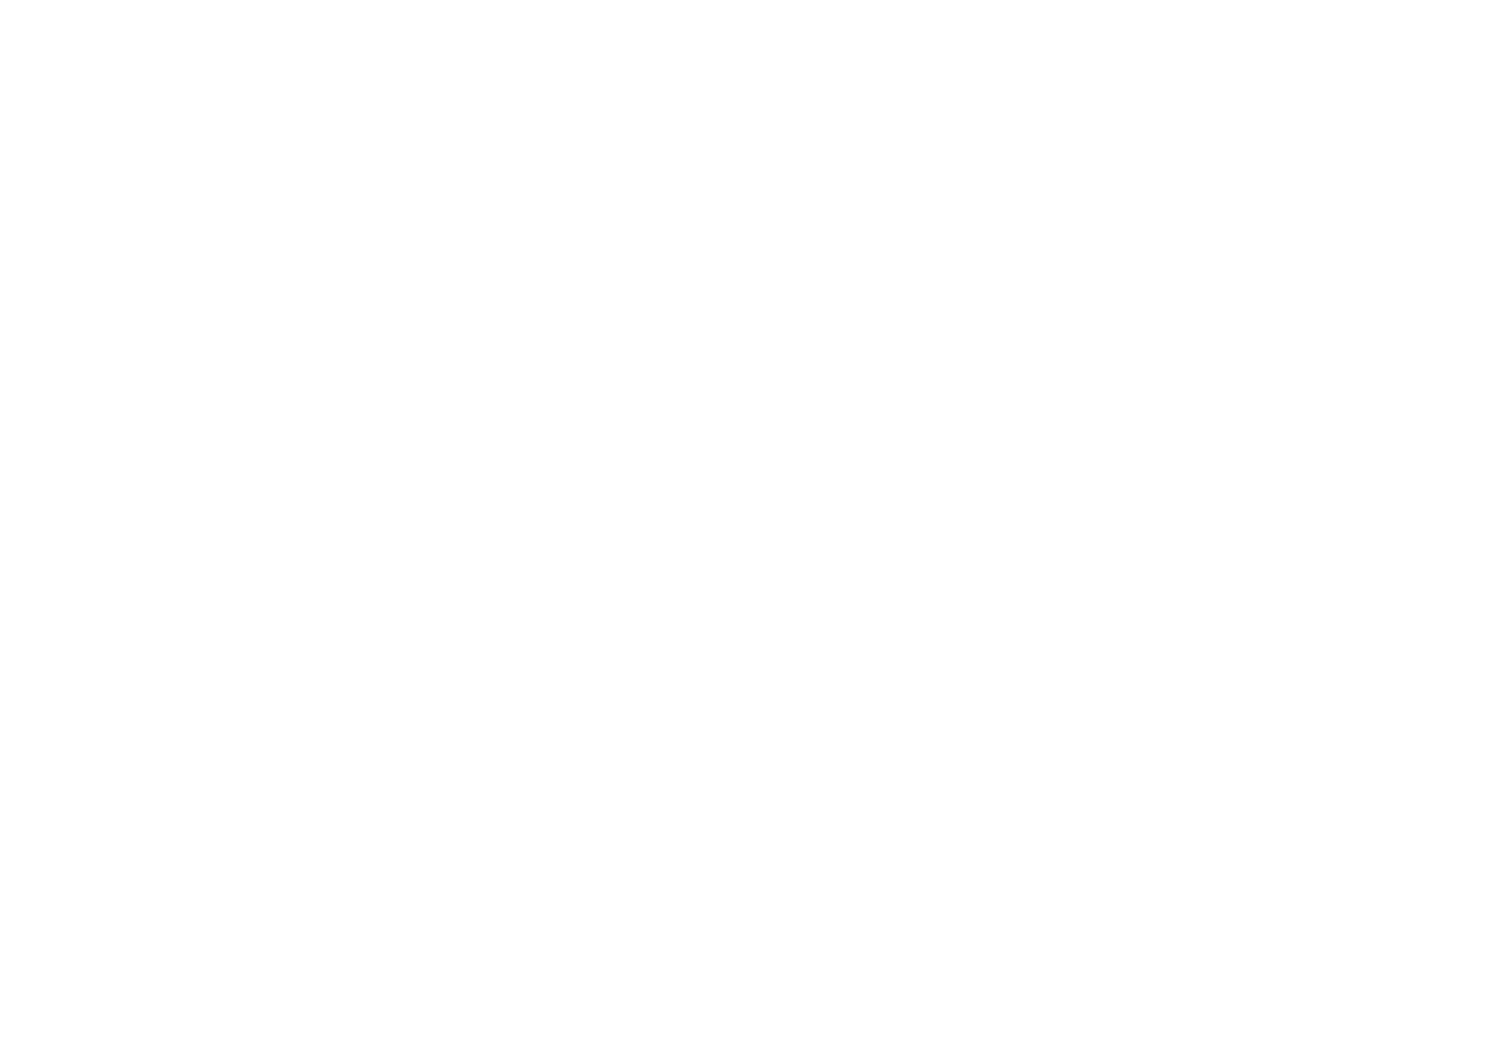 Goldie Lahr